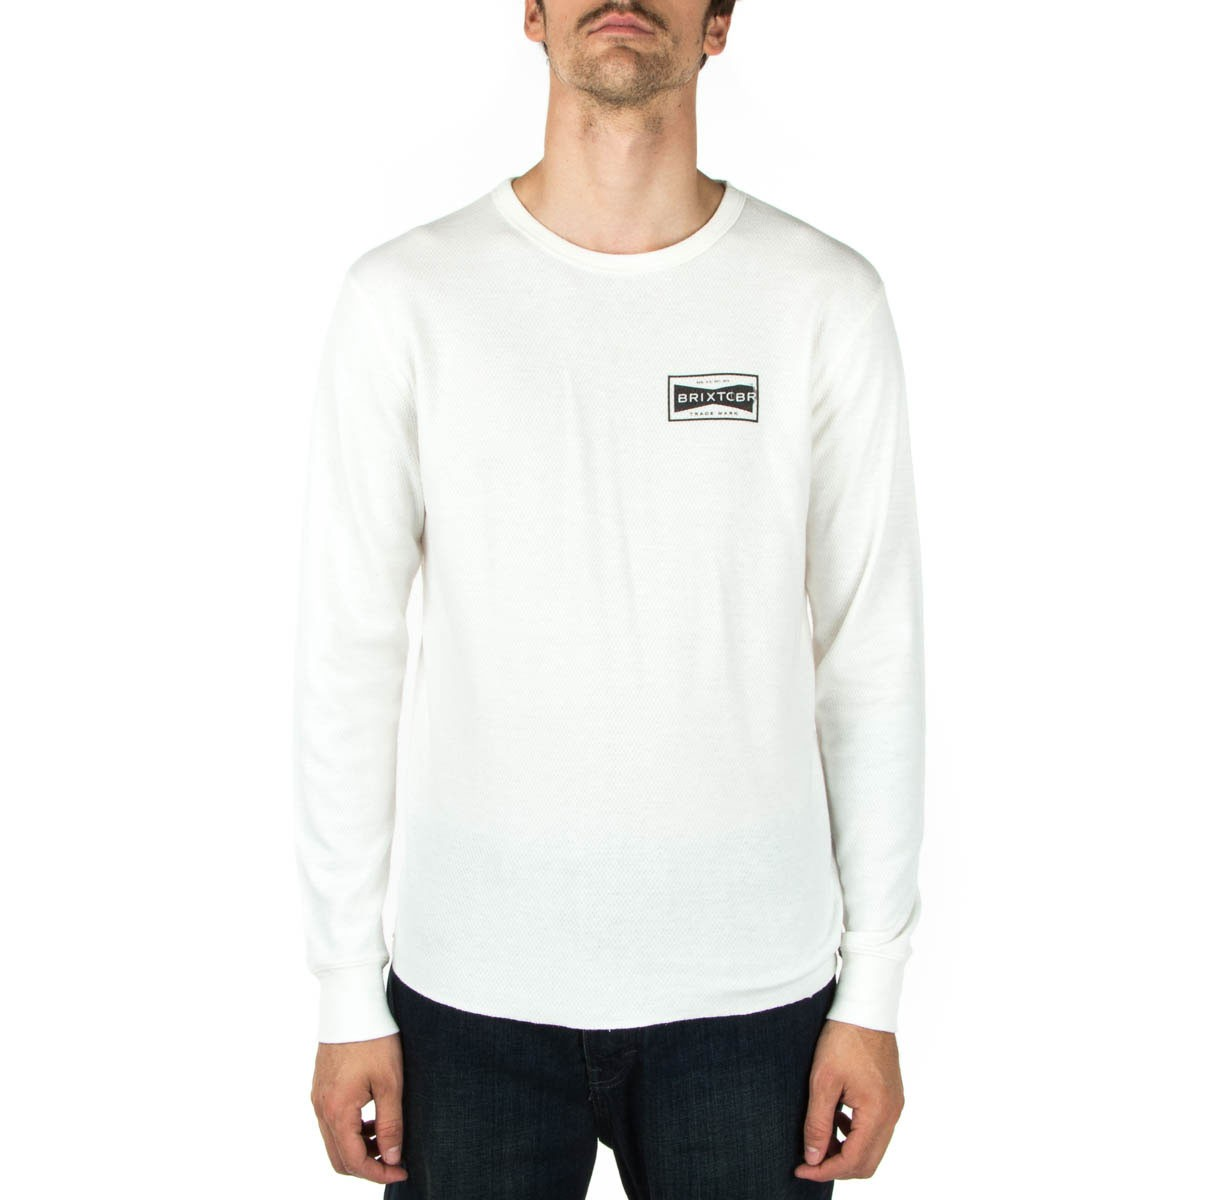 Fuel Long Sleeve Thermal Shirt - Cream